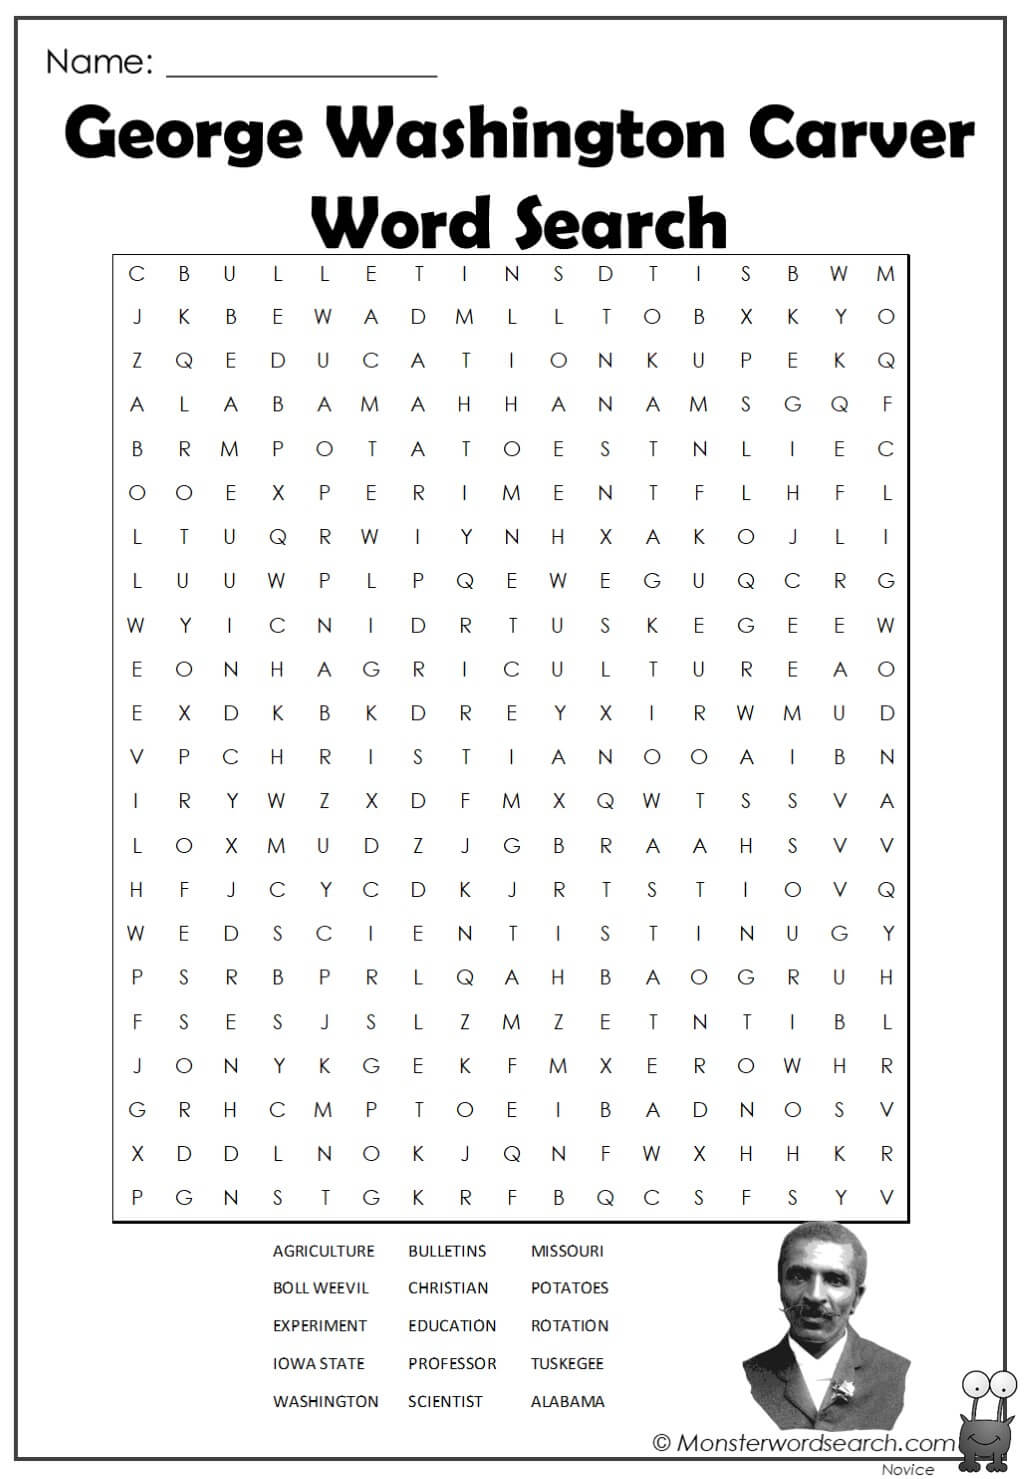 George Washington Carver Word Search Monster Word Search